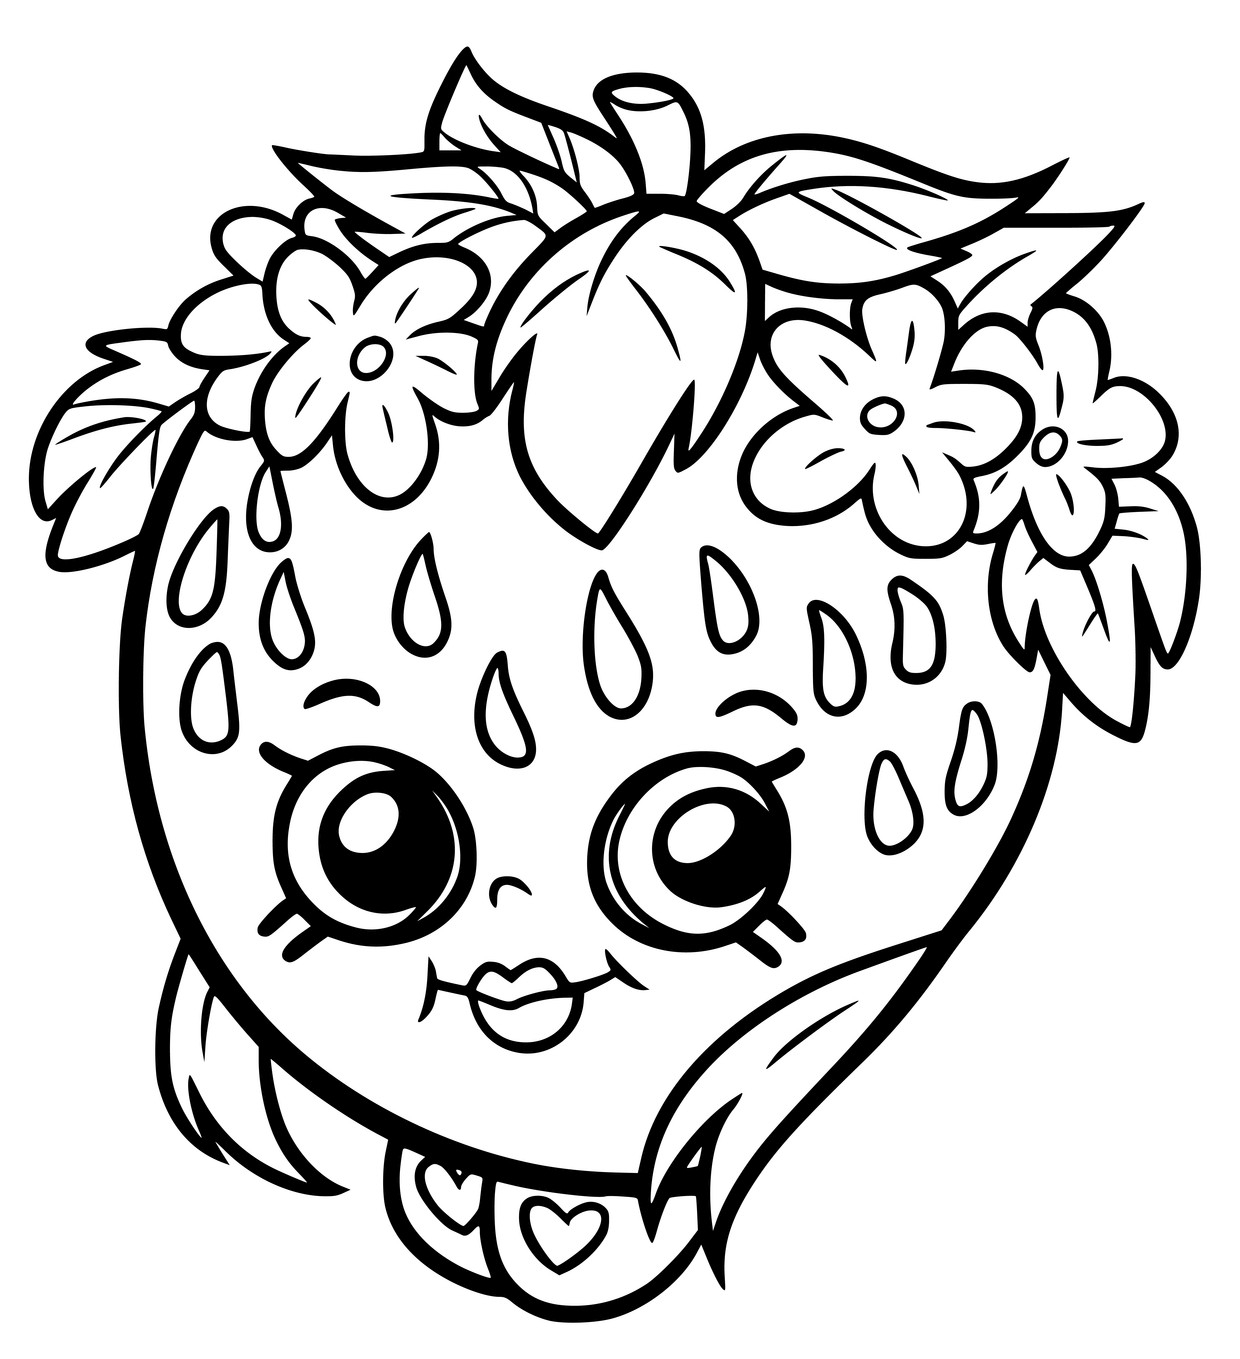 free shopkins print shopkins coloring pages printable free coloring sheets free shopkins